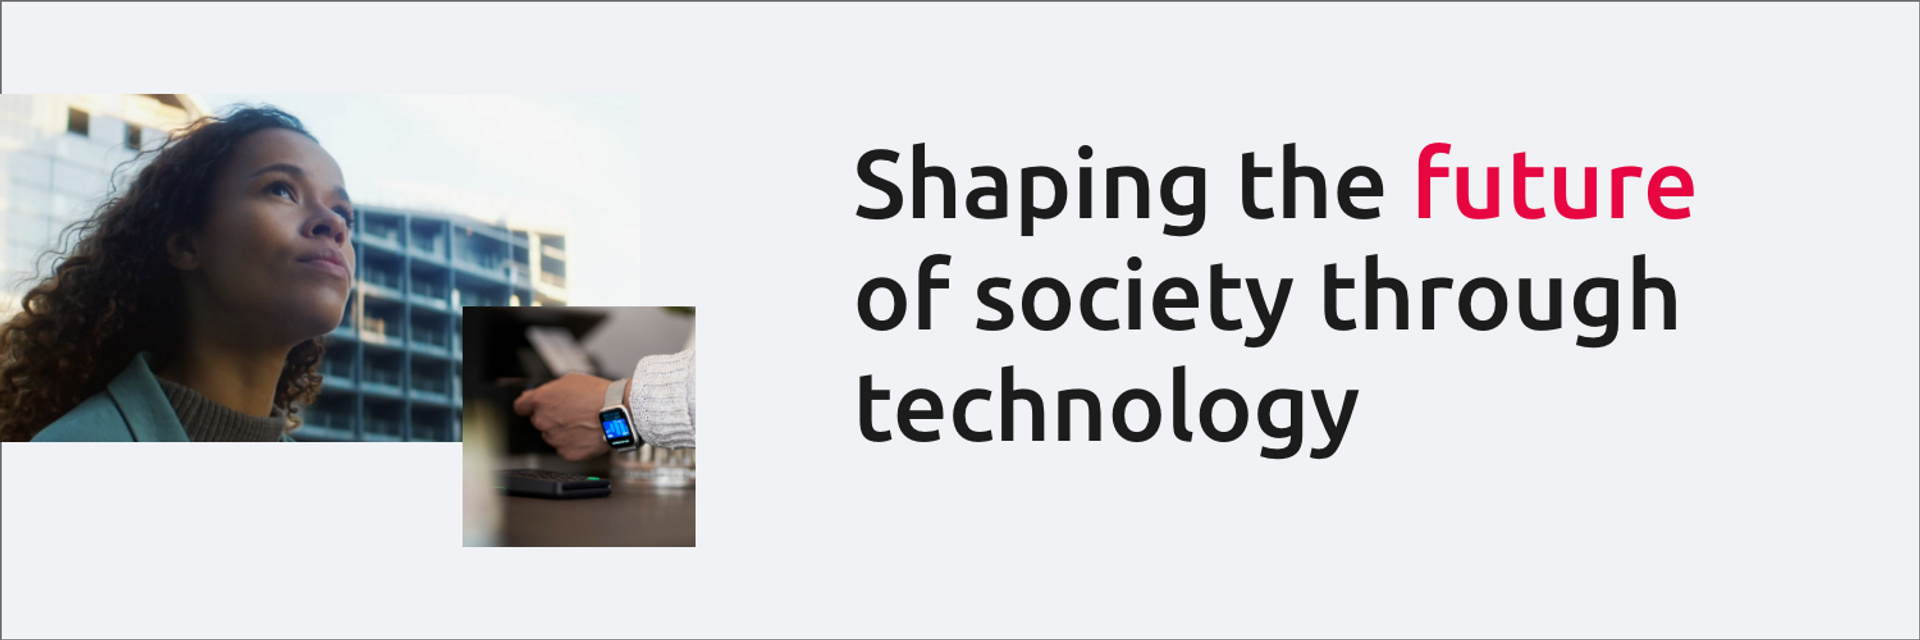 Easycruit_Shaping_the_future_of_society_1